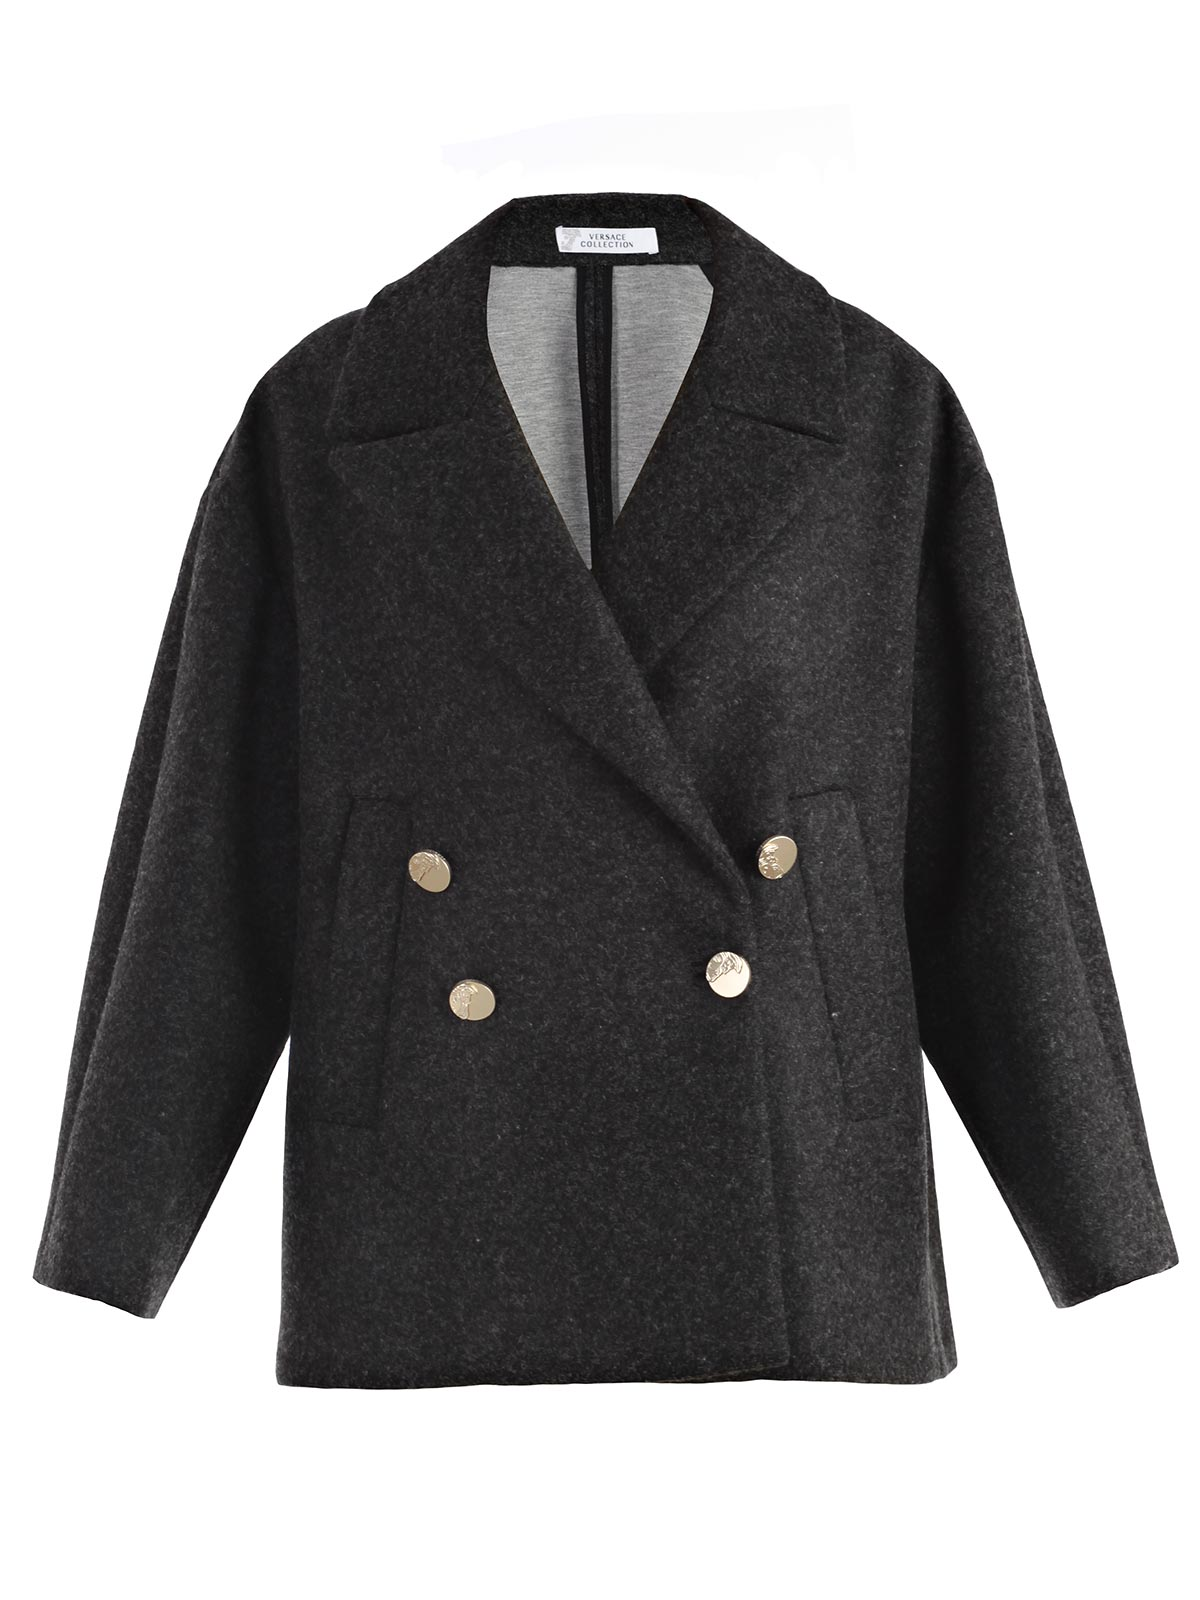 Picture of VERSACE COLLECTION COAT GIACCONE D/PETTO M/L OVER